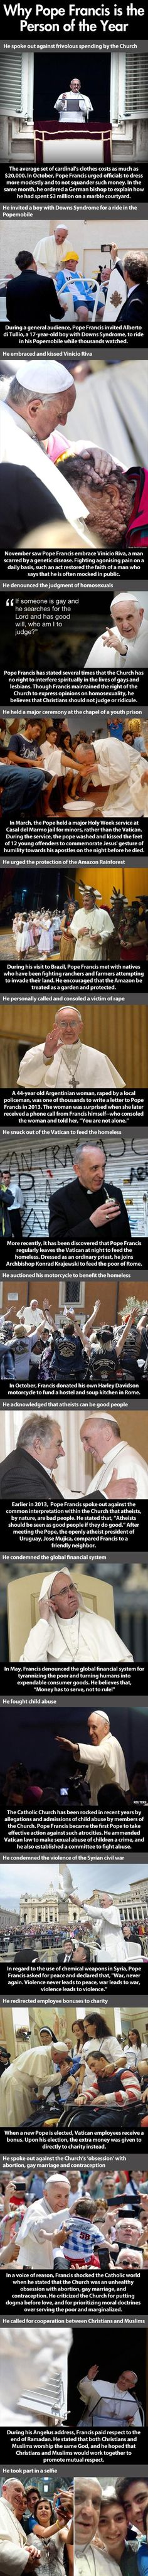 The Pope is a pretty cool guy.